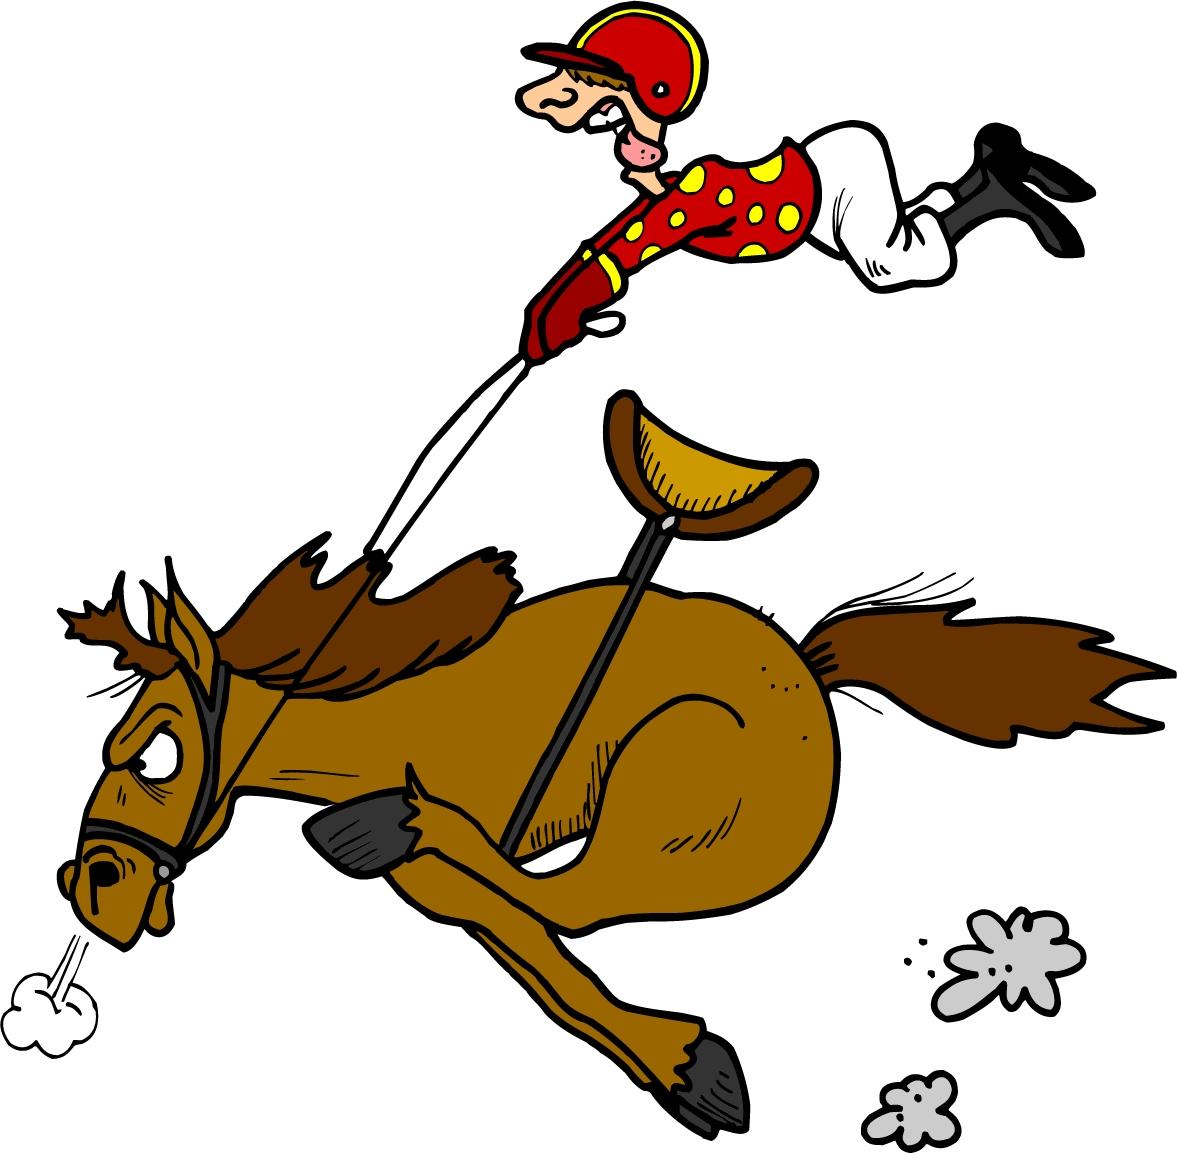 1178x1154 Horse Racing Clip Art Free Collection Download And Share Horse